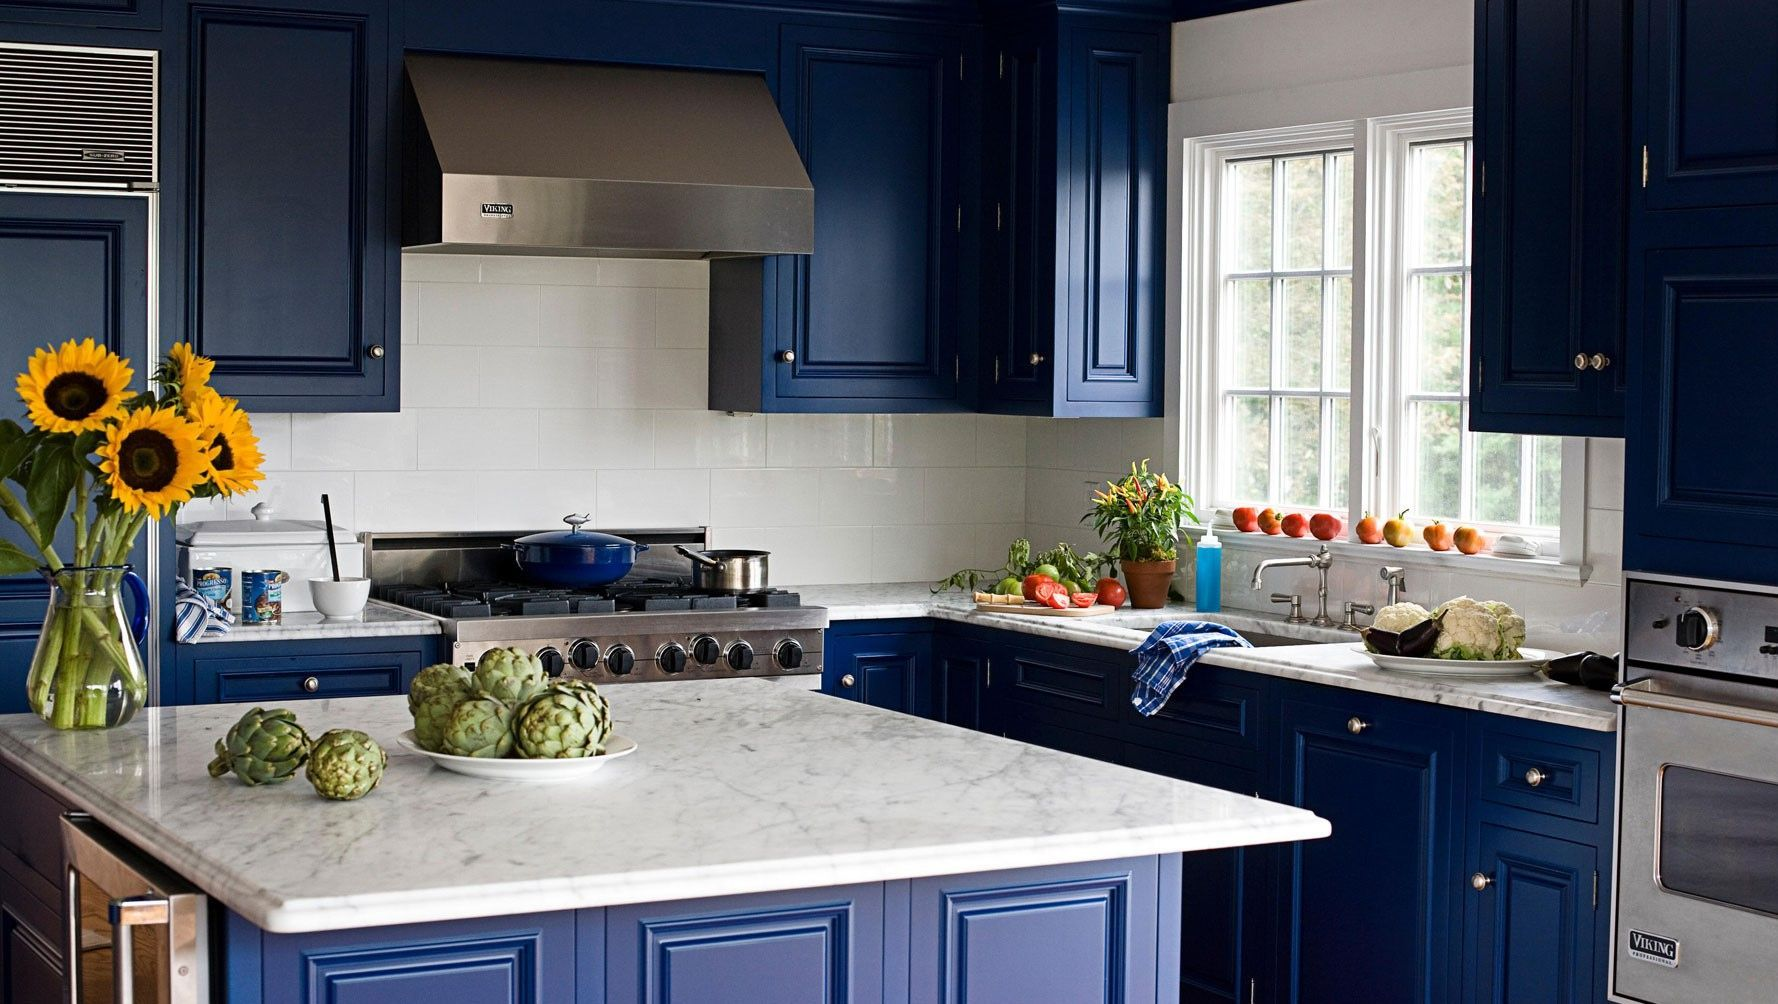 kitchen remodeling is one of the services that many of our